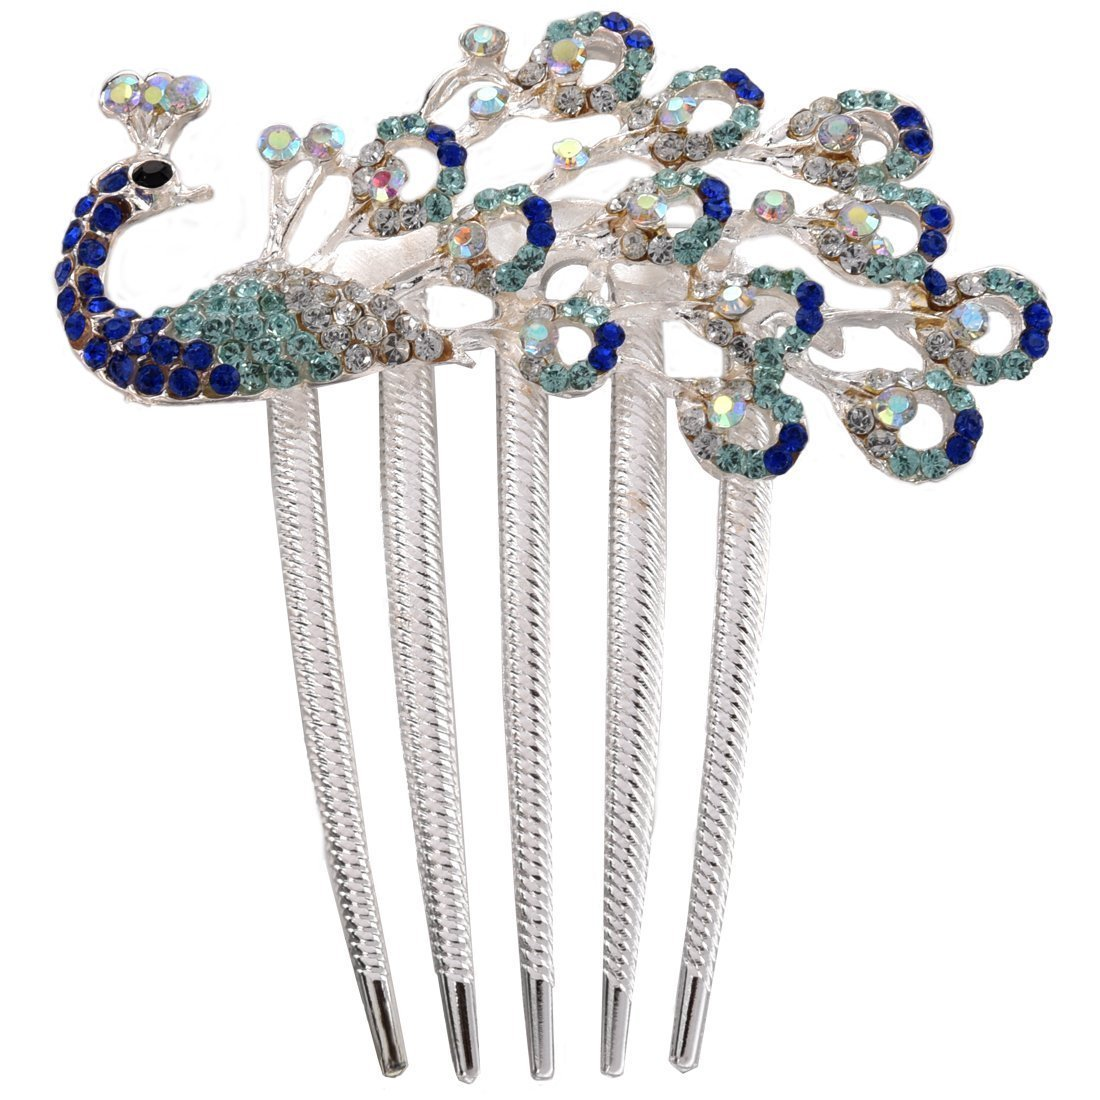 SODIAL(R) Lovely Vintage Jewelry Crystal Peacock Hair Clips for hair clip Beauty Tools